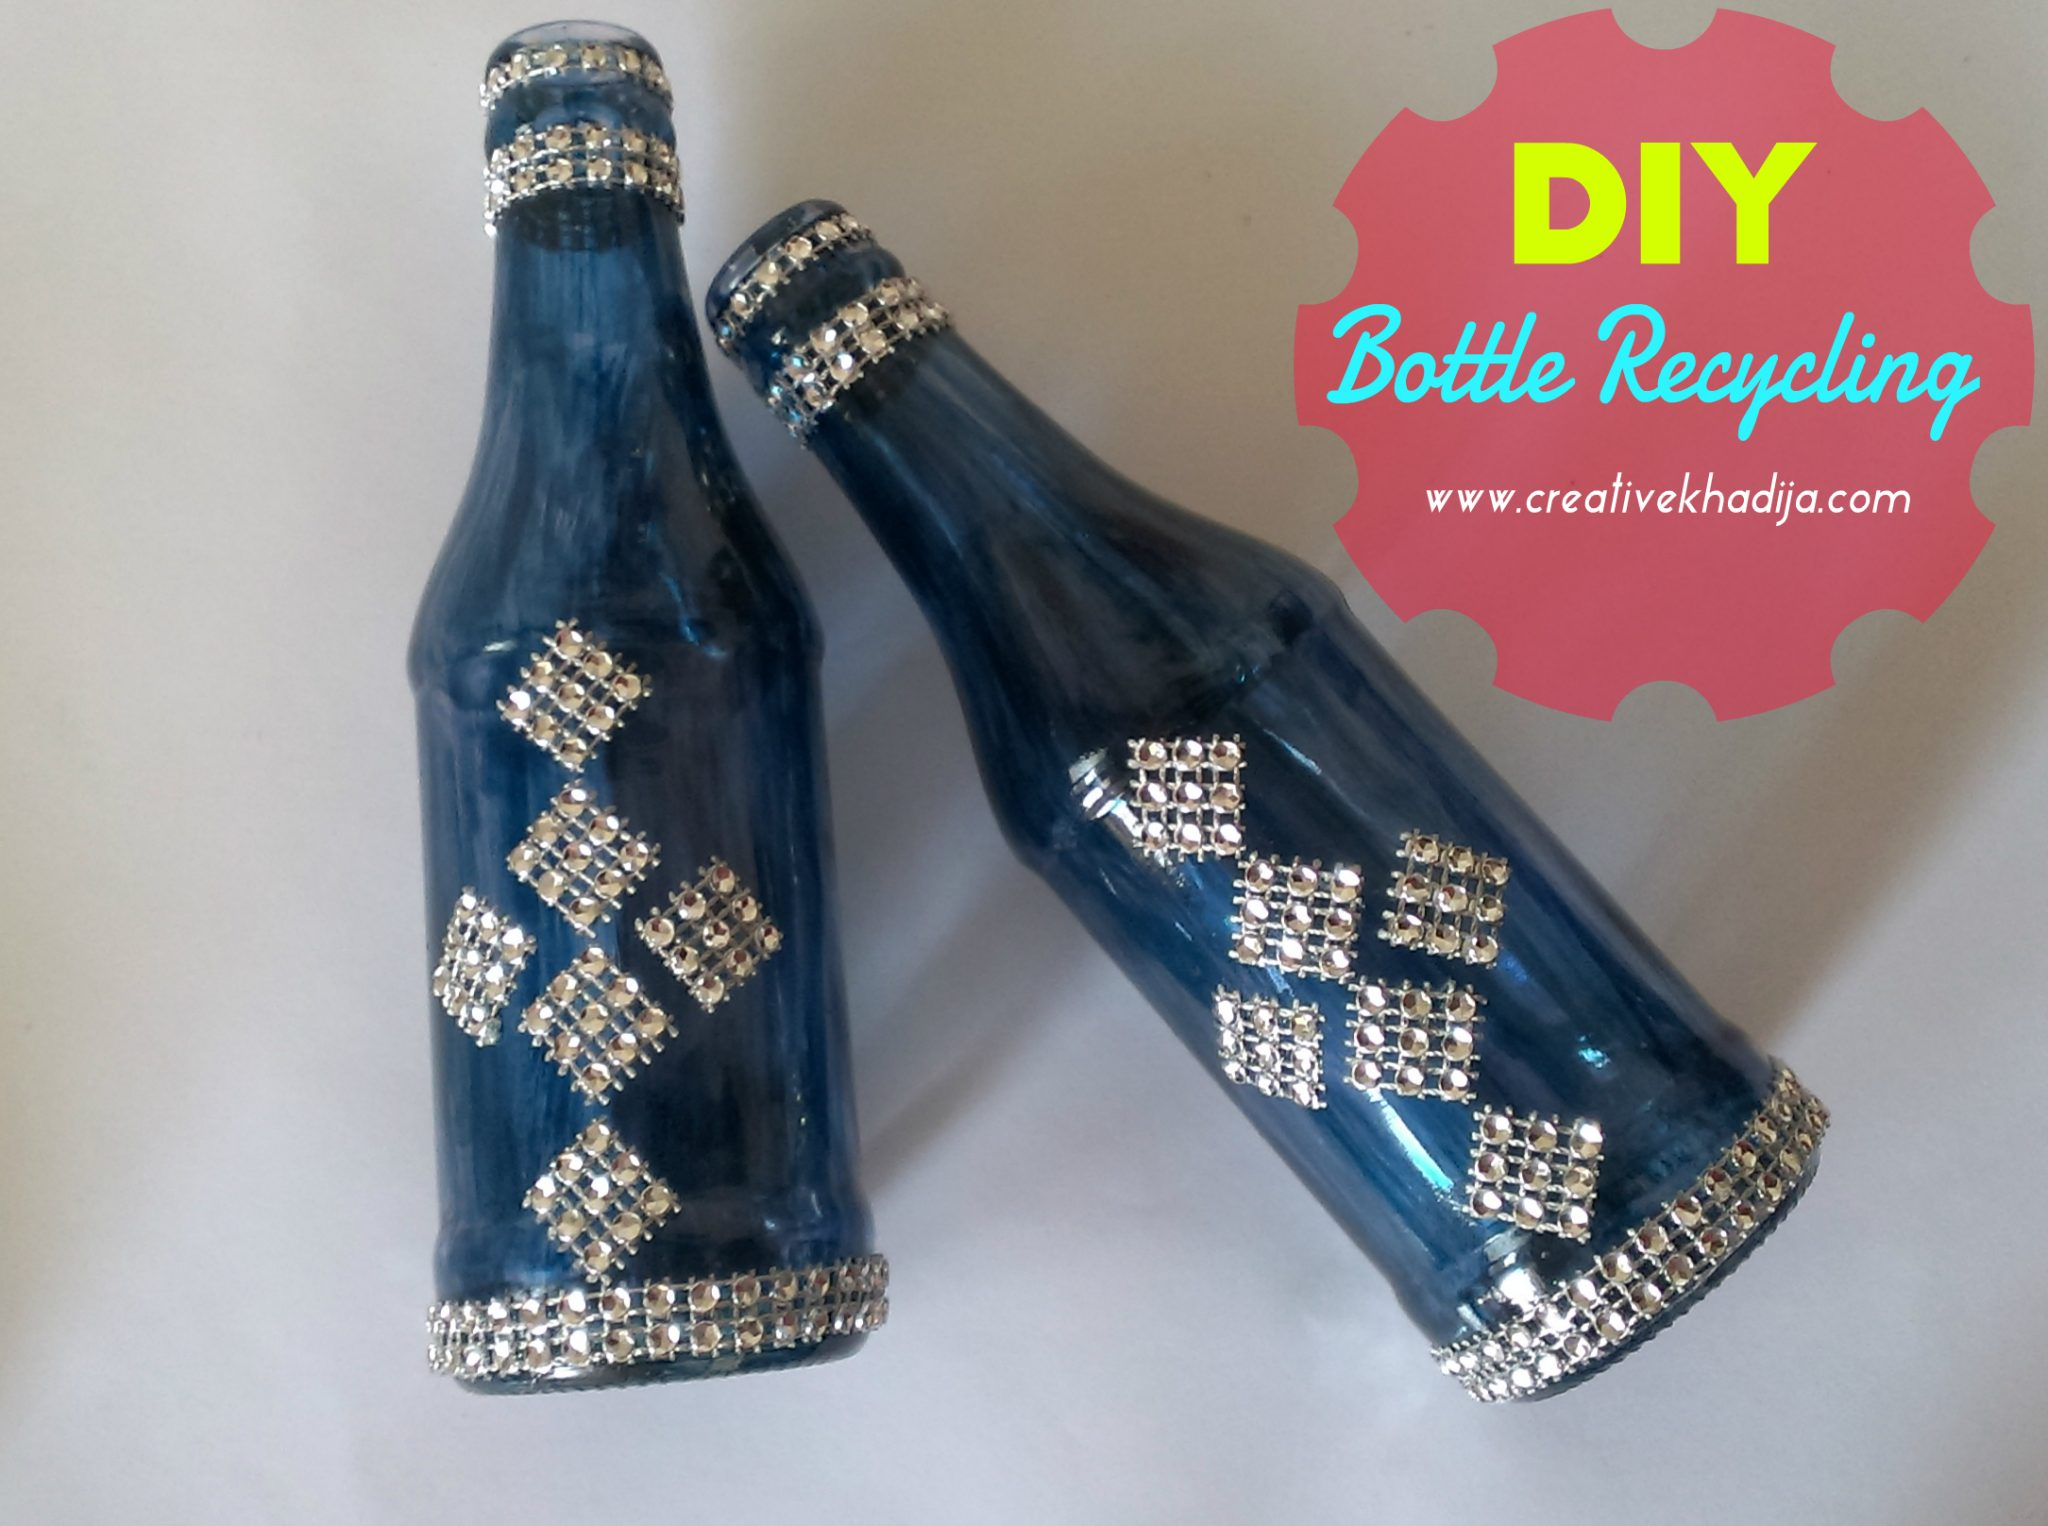 bottle painting ideas and tutorials